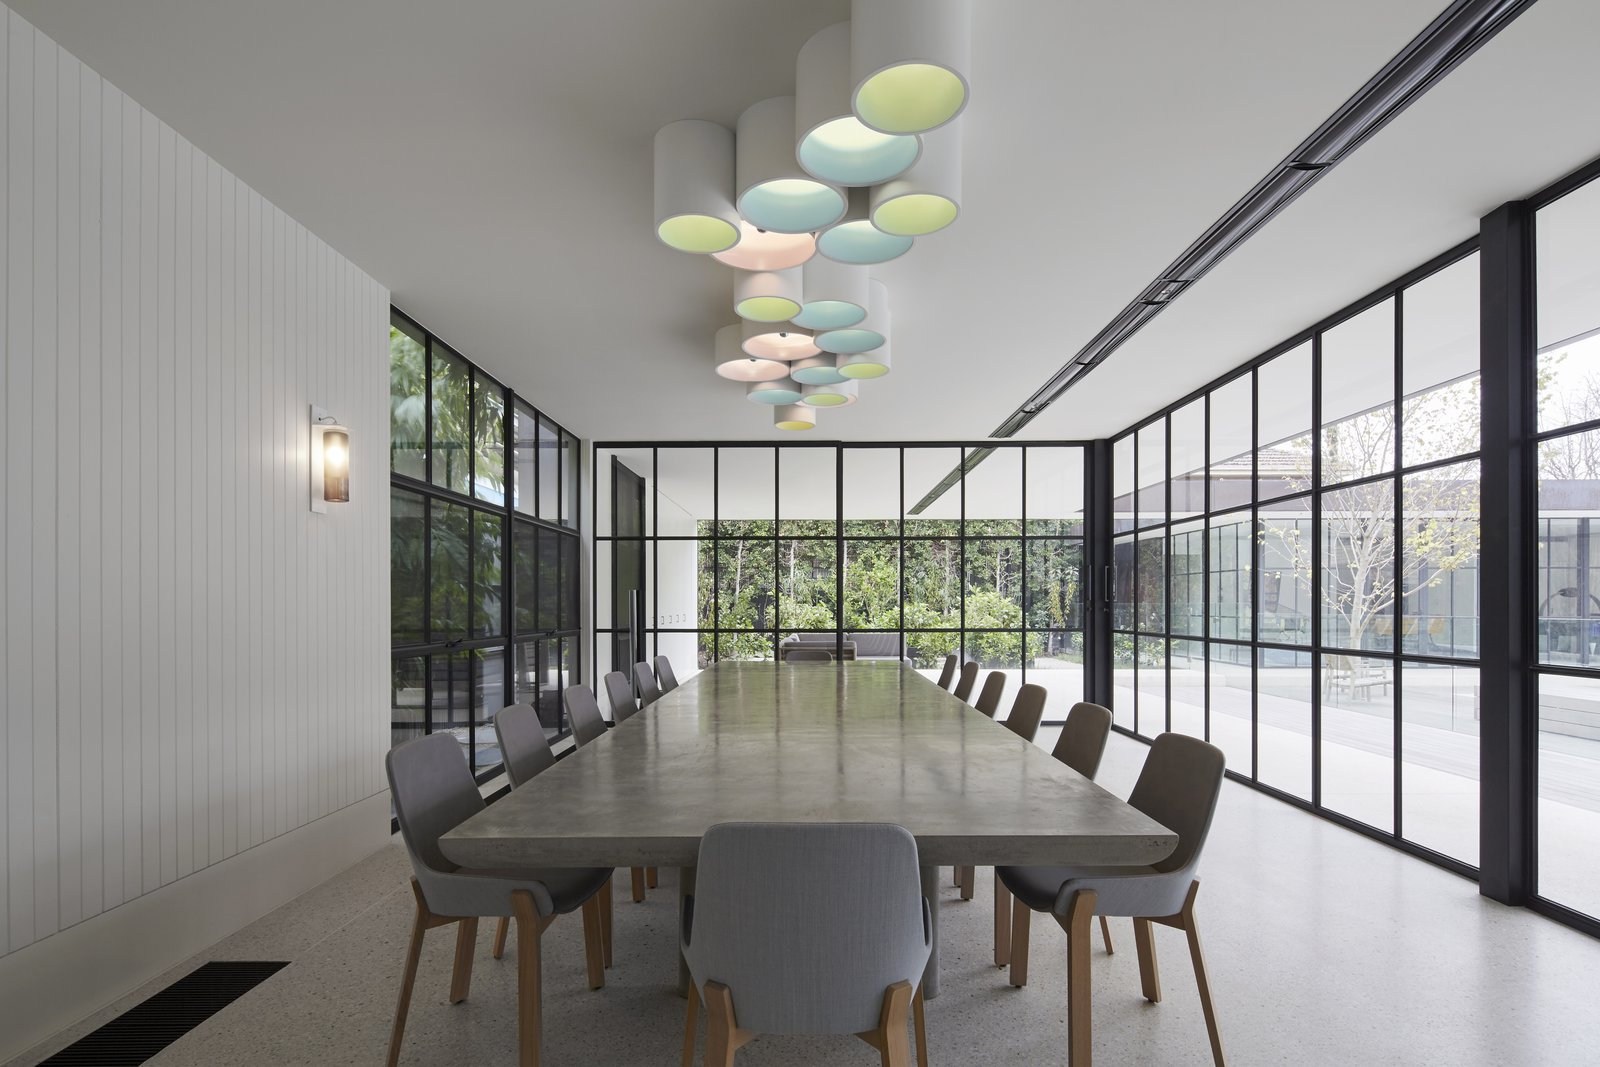 Dining Room, Chair, Table, Ceiling Lighting, and Wall Lighting  Photo 6 of 11 in See How Sliding-Glass Pavilions Transformed a Renovated Melbourne Home